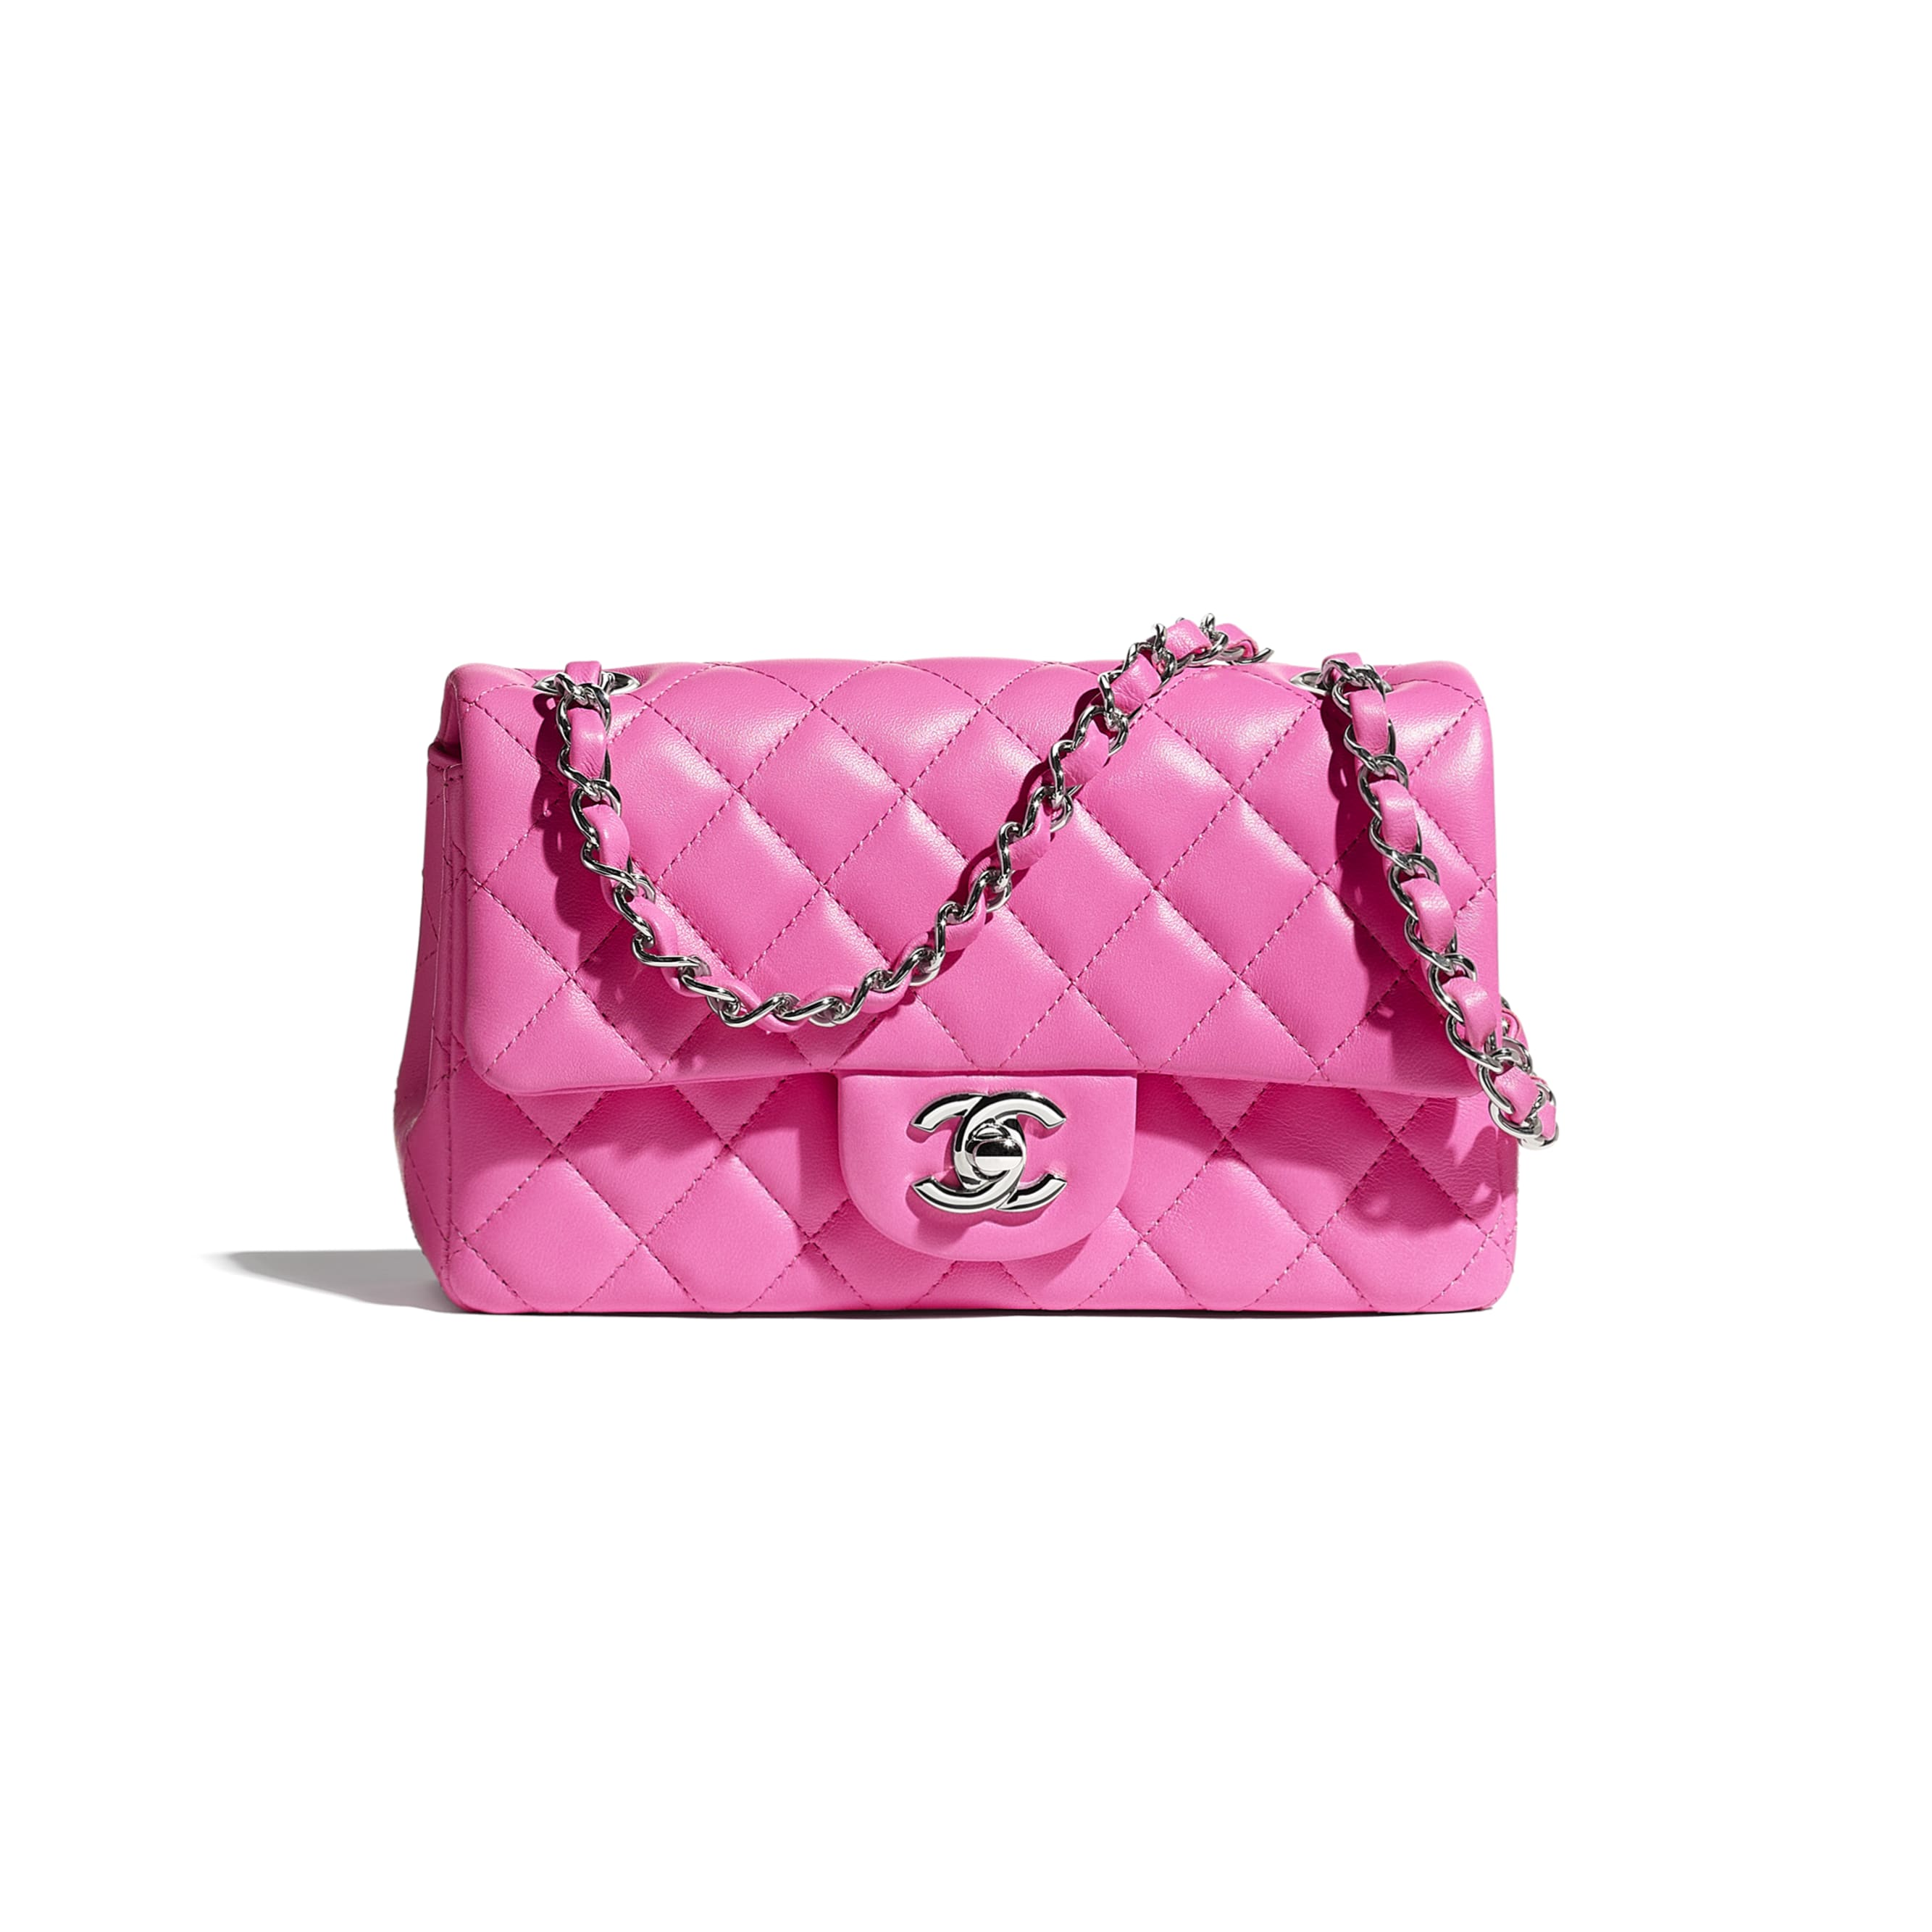 Mini Flap Bag - Neon Pink - Lambskin - CHANEL - Default view - see standard sized version